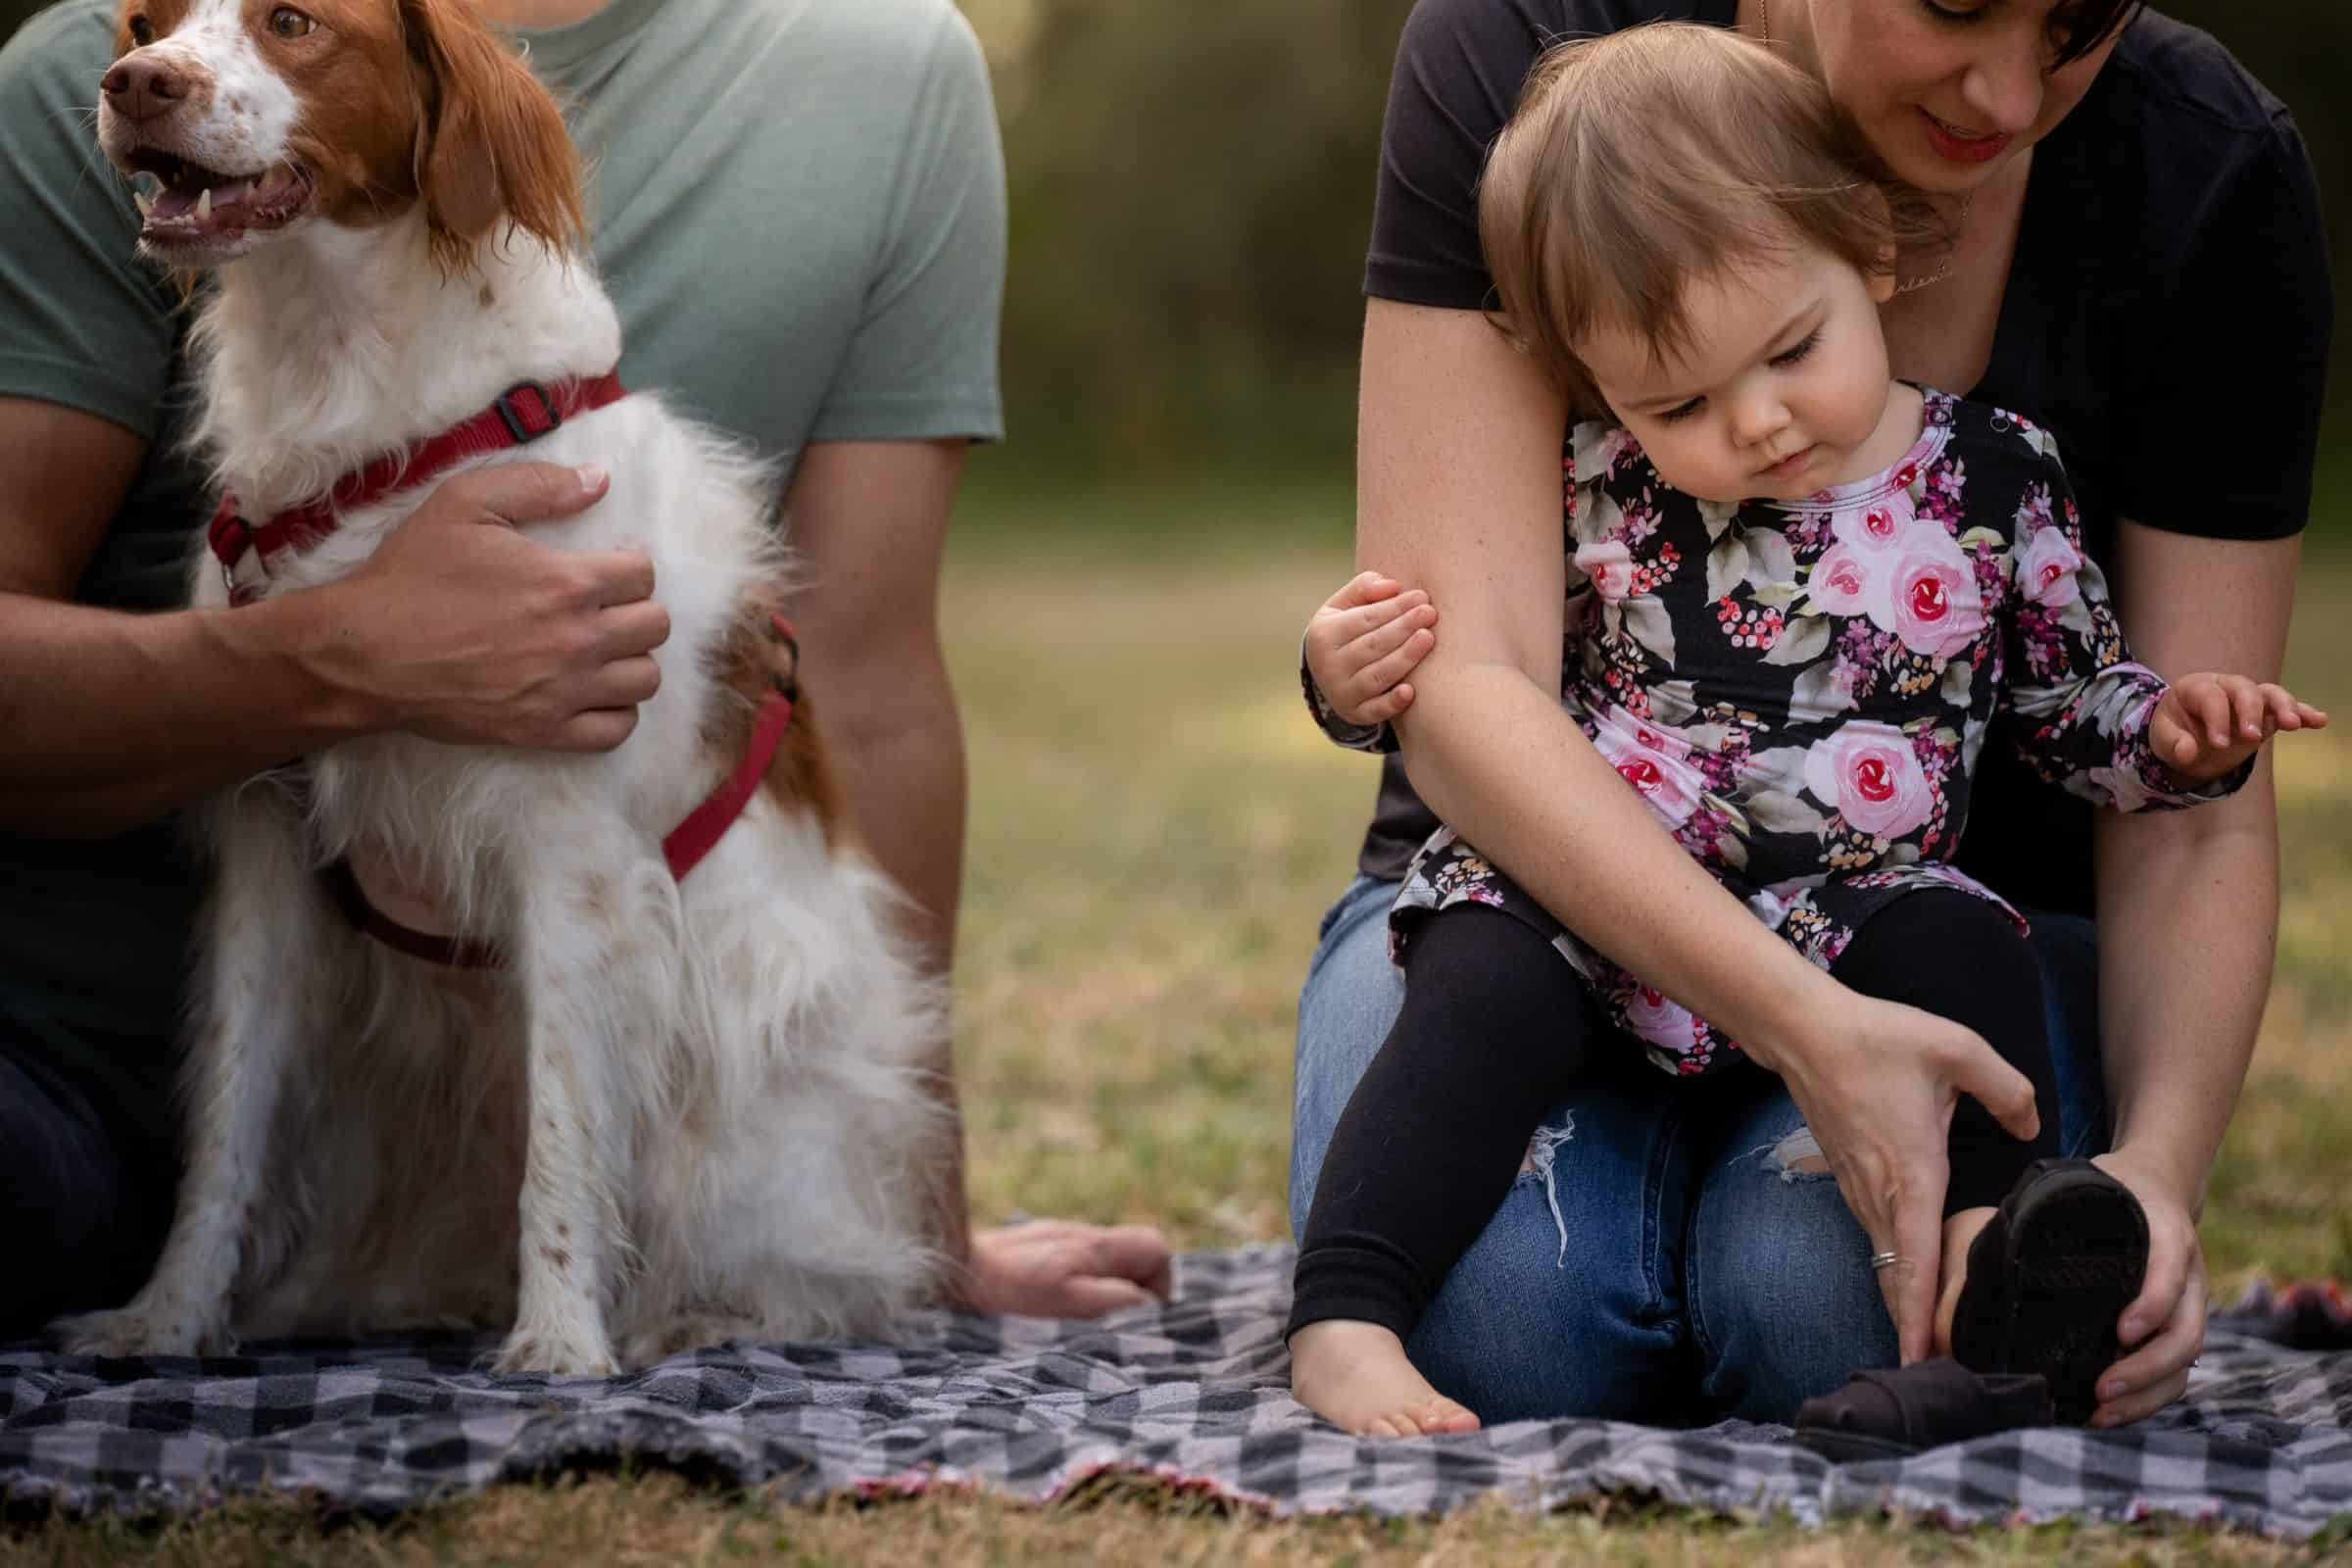 mom helping toddler to put on shoes while dad holds dog